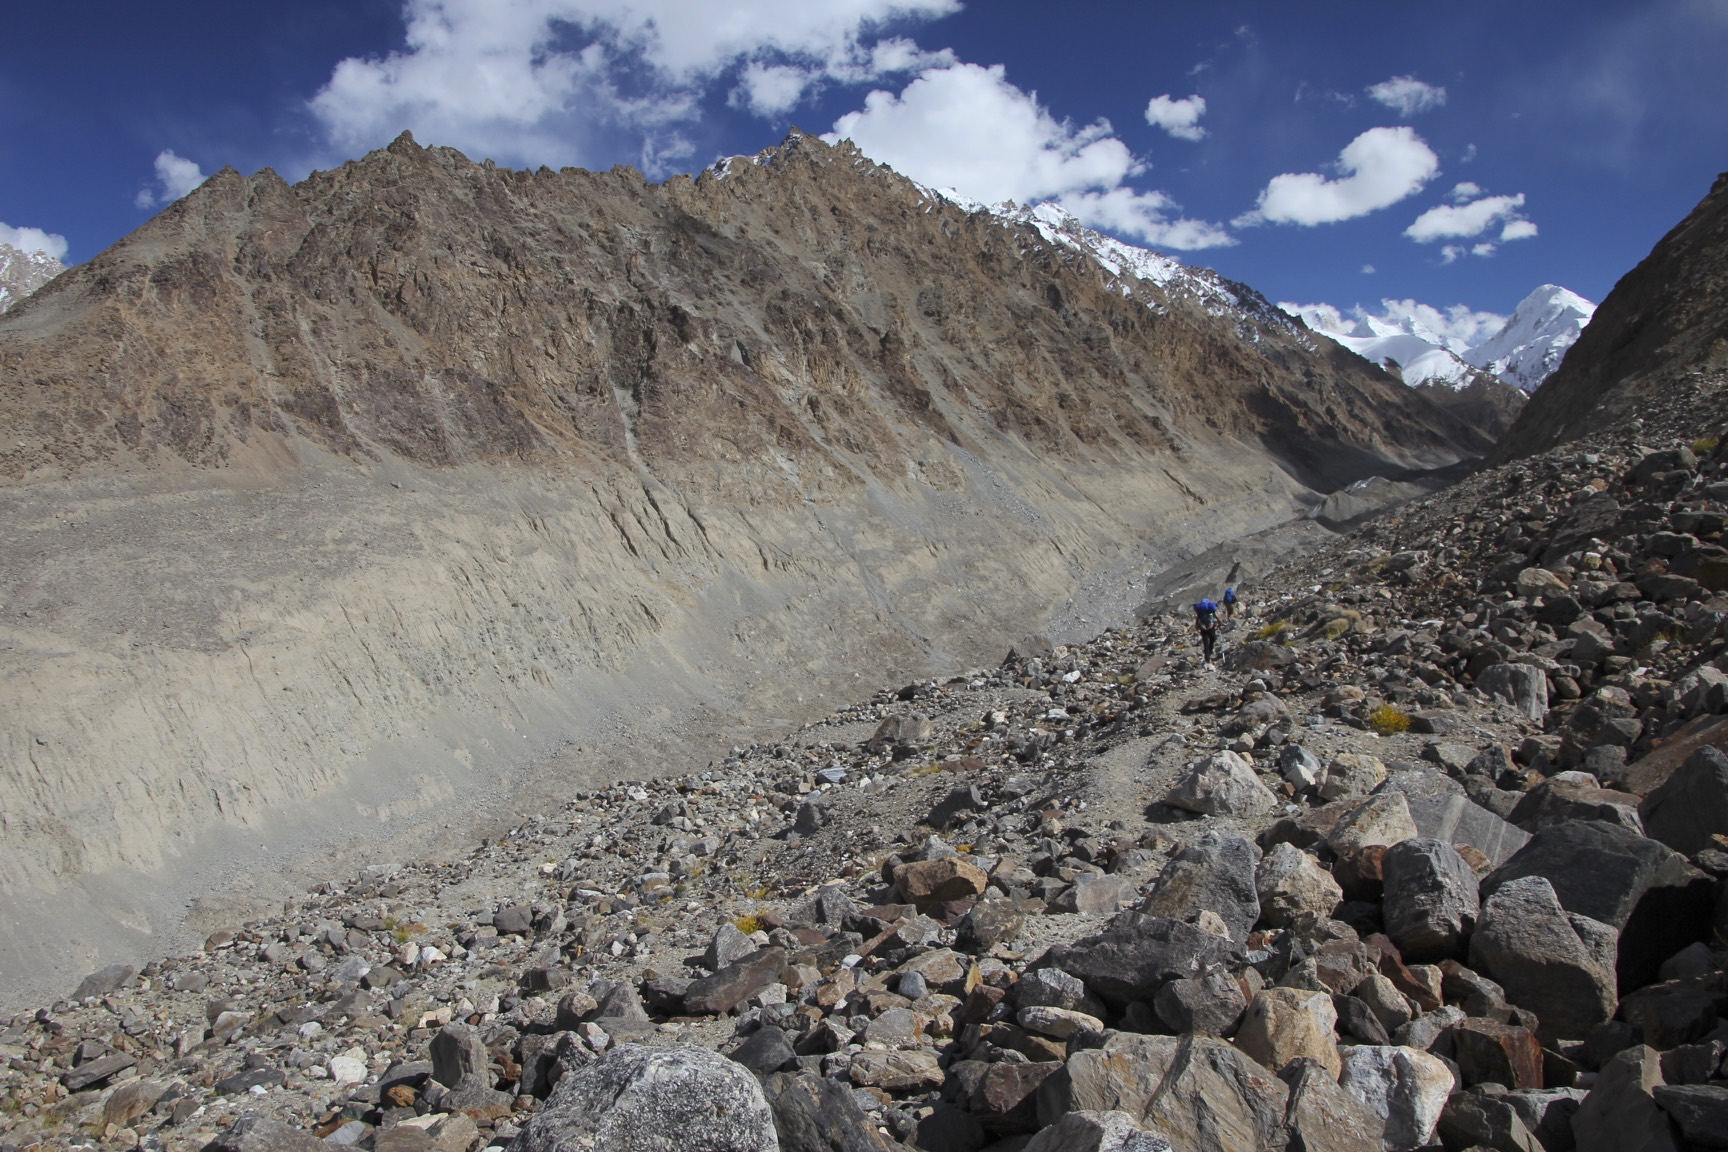 Approaching the K2 Glacier